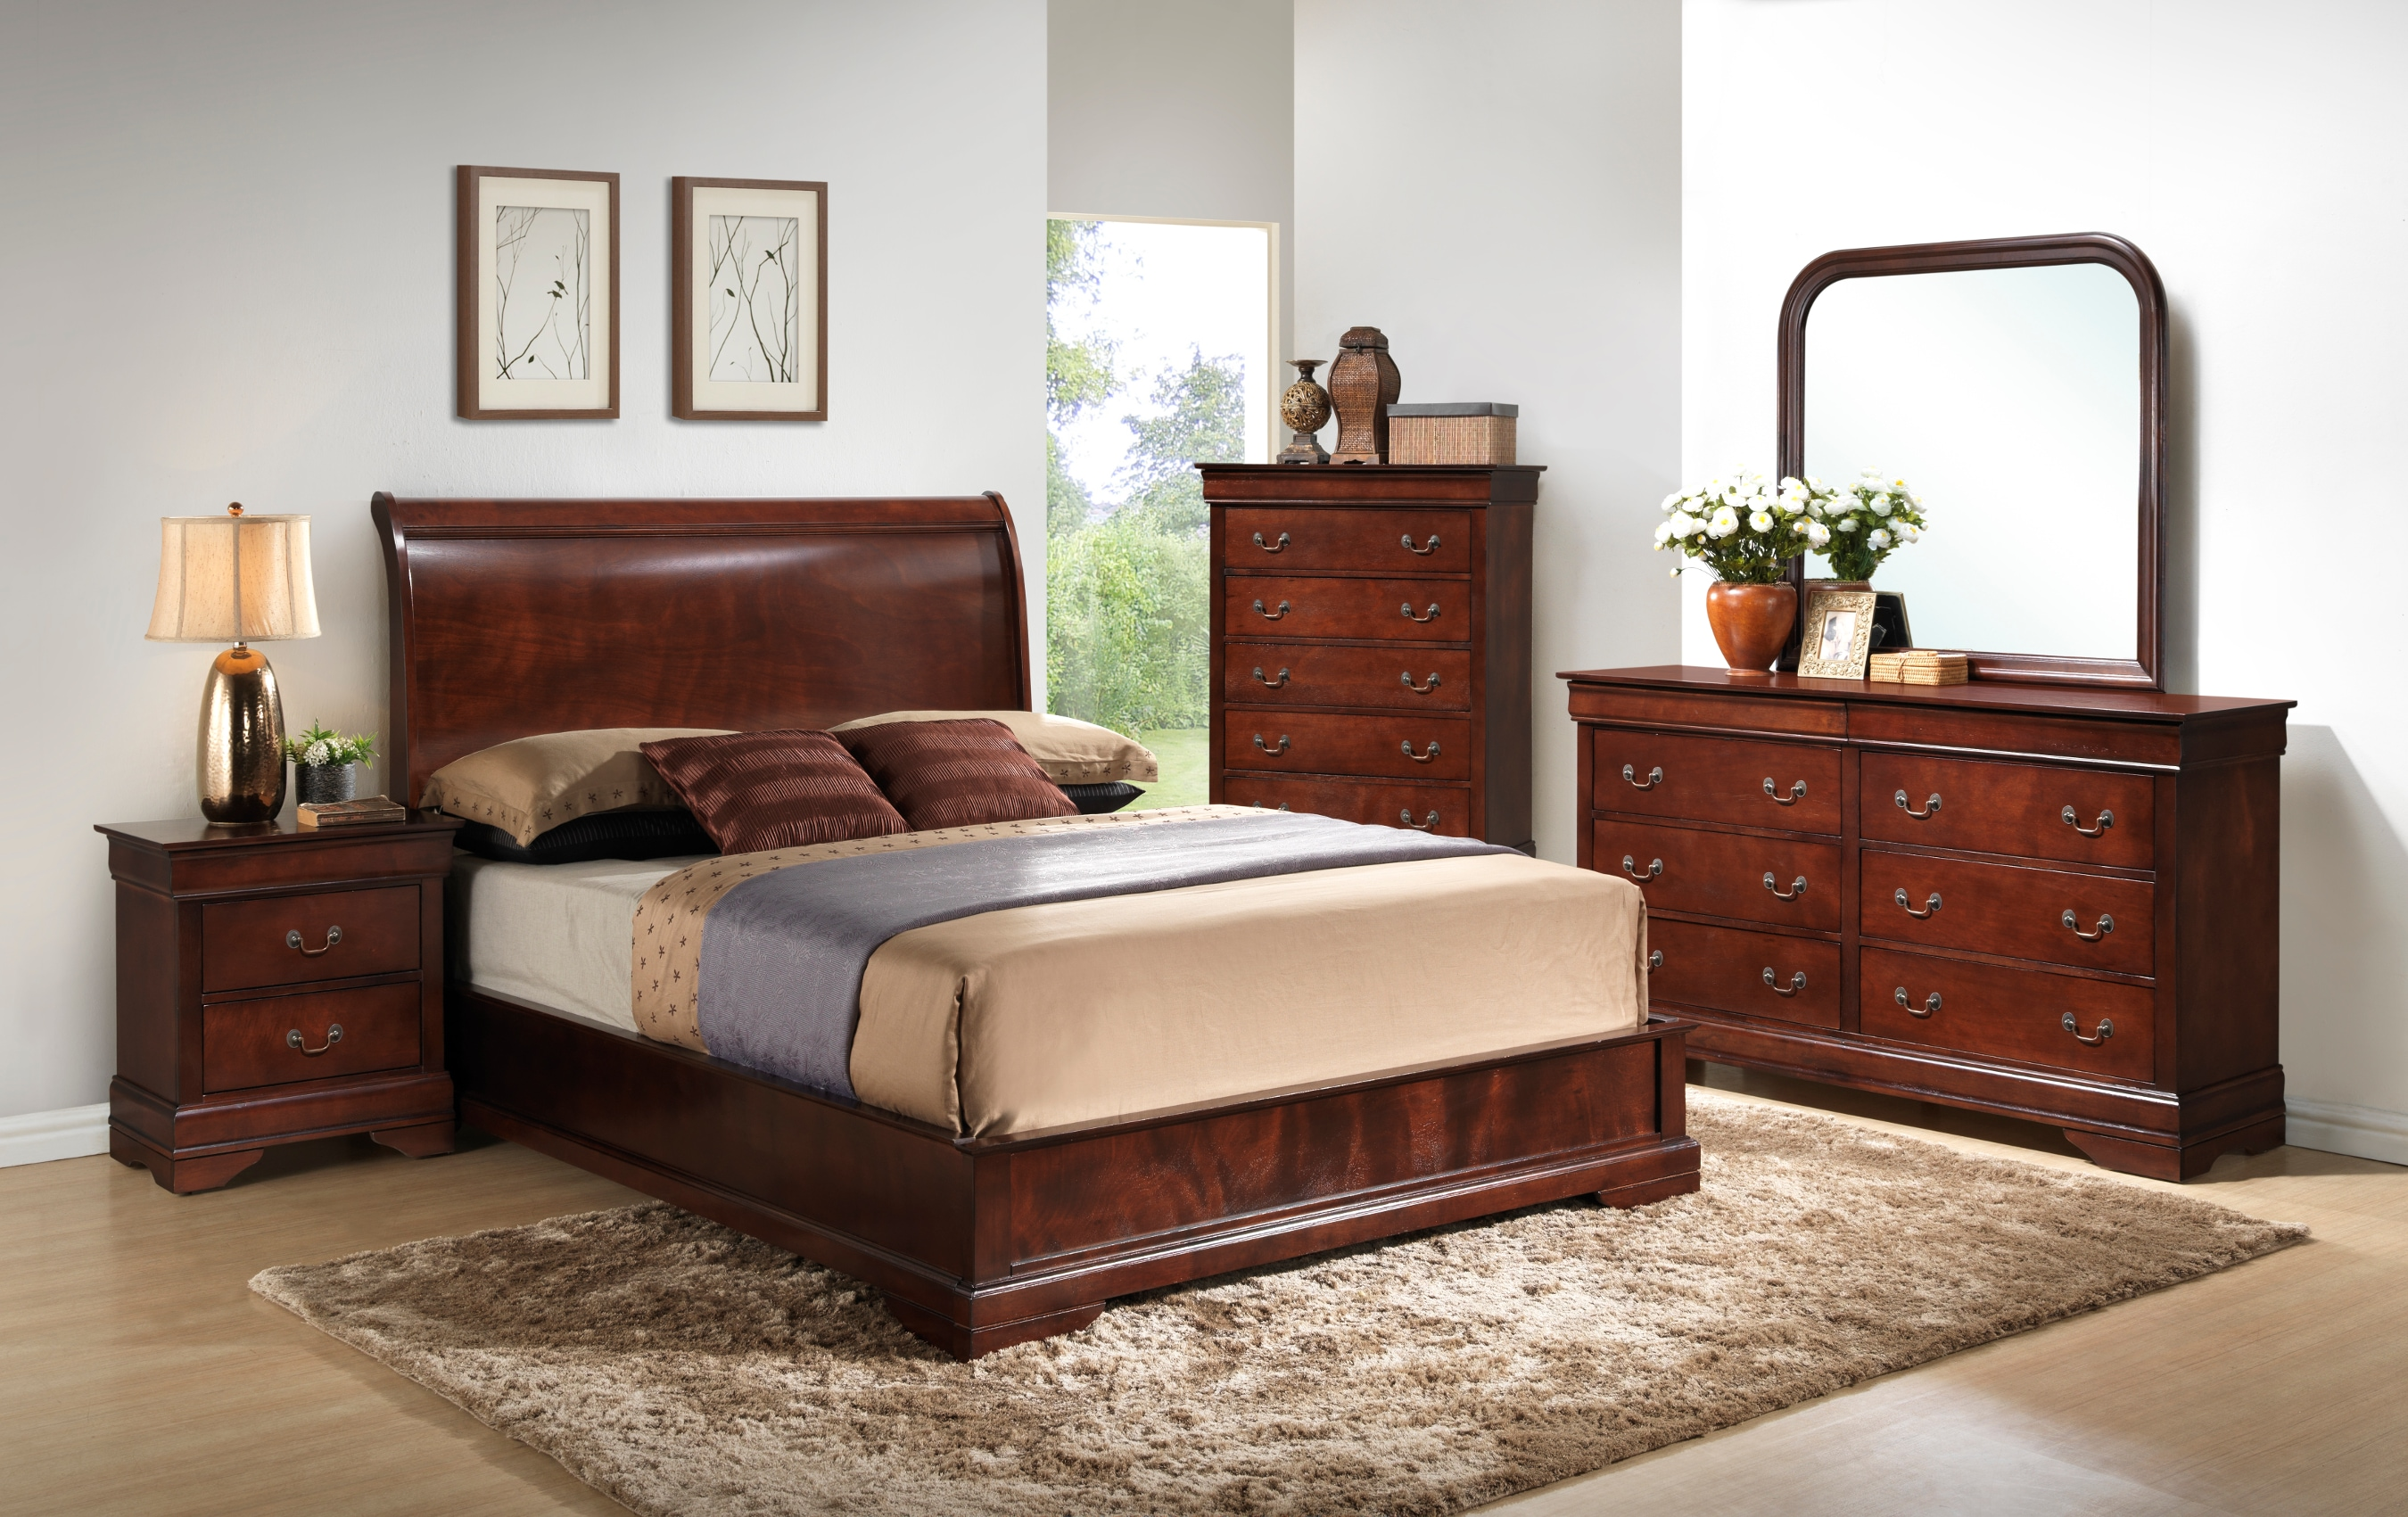 Bedroom Furniture - Claire King Bedroom